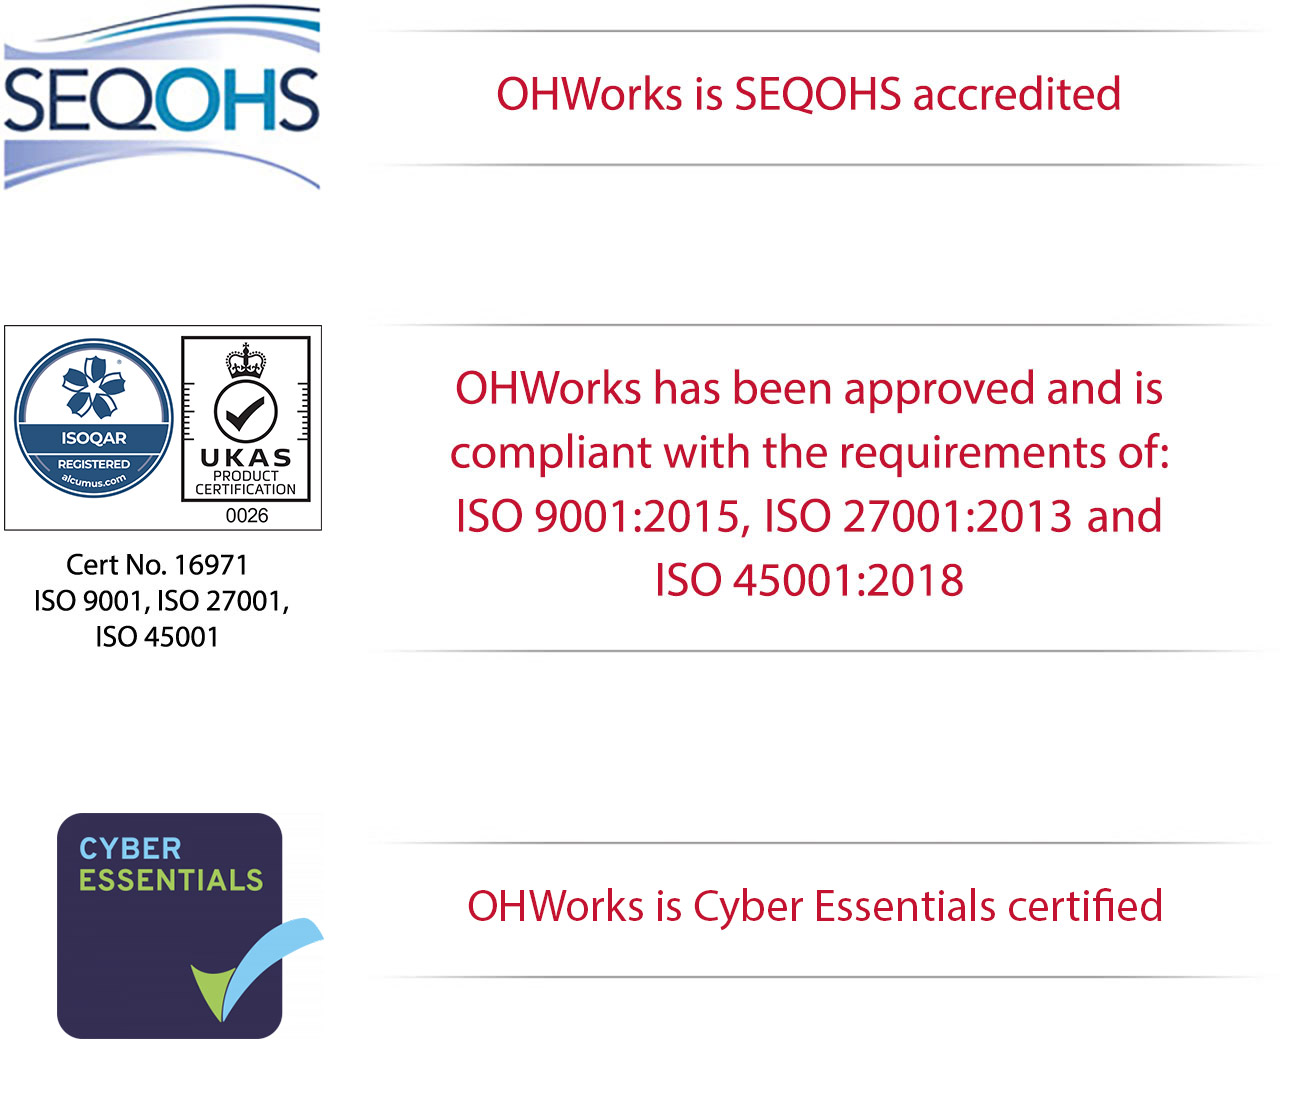 SEQOHS accredited